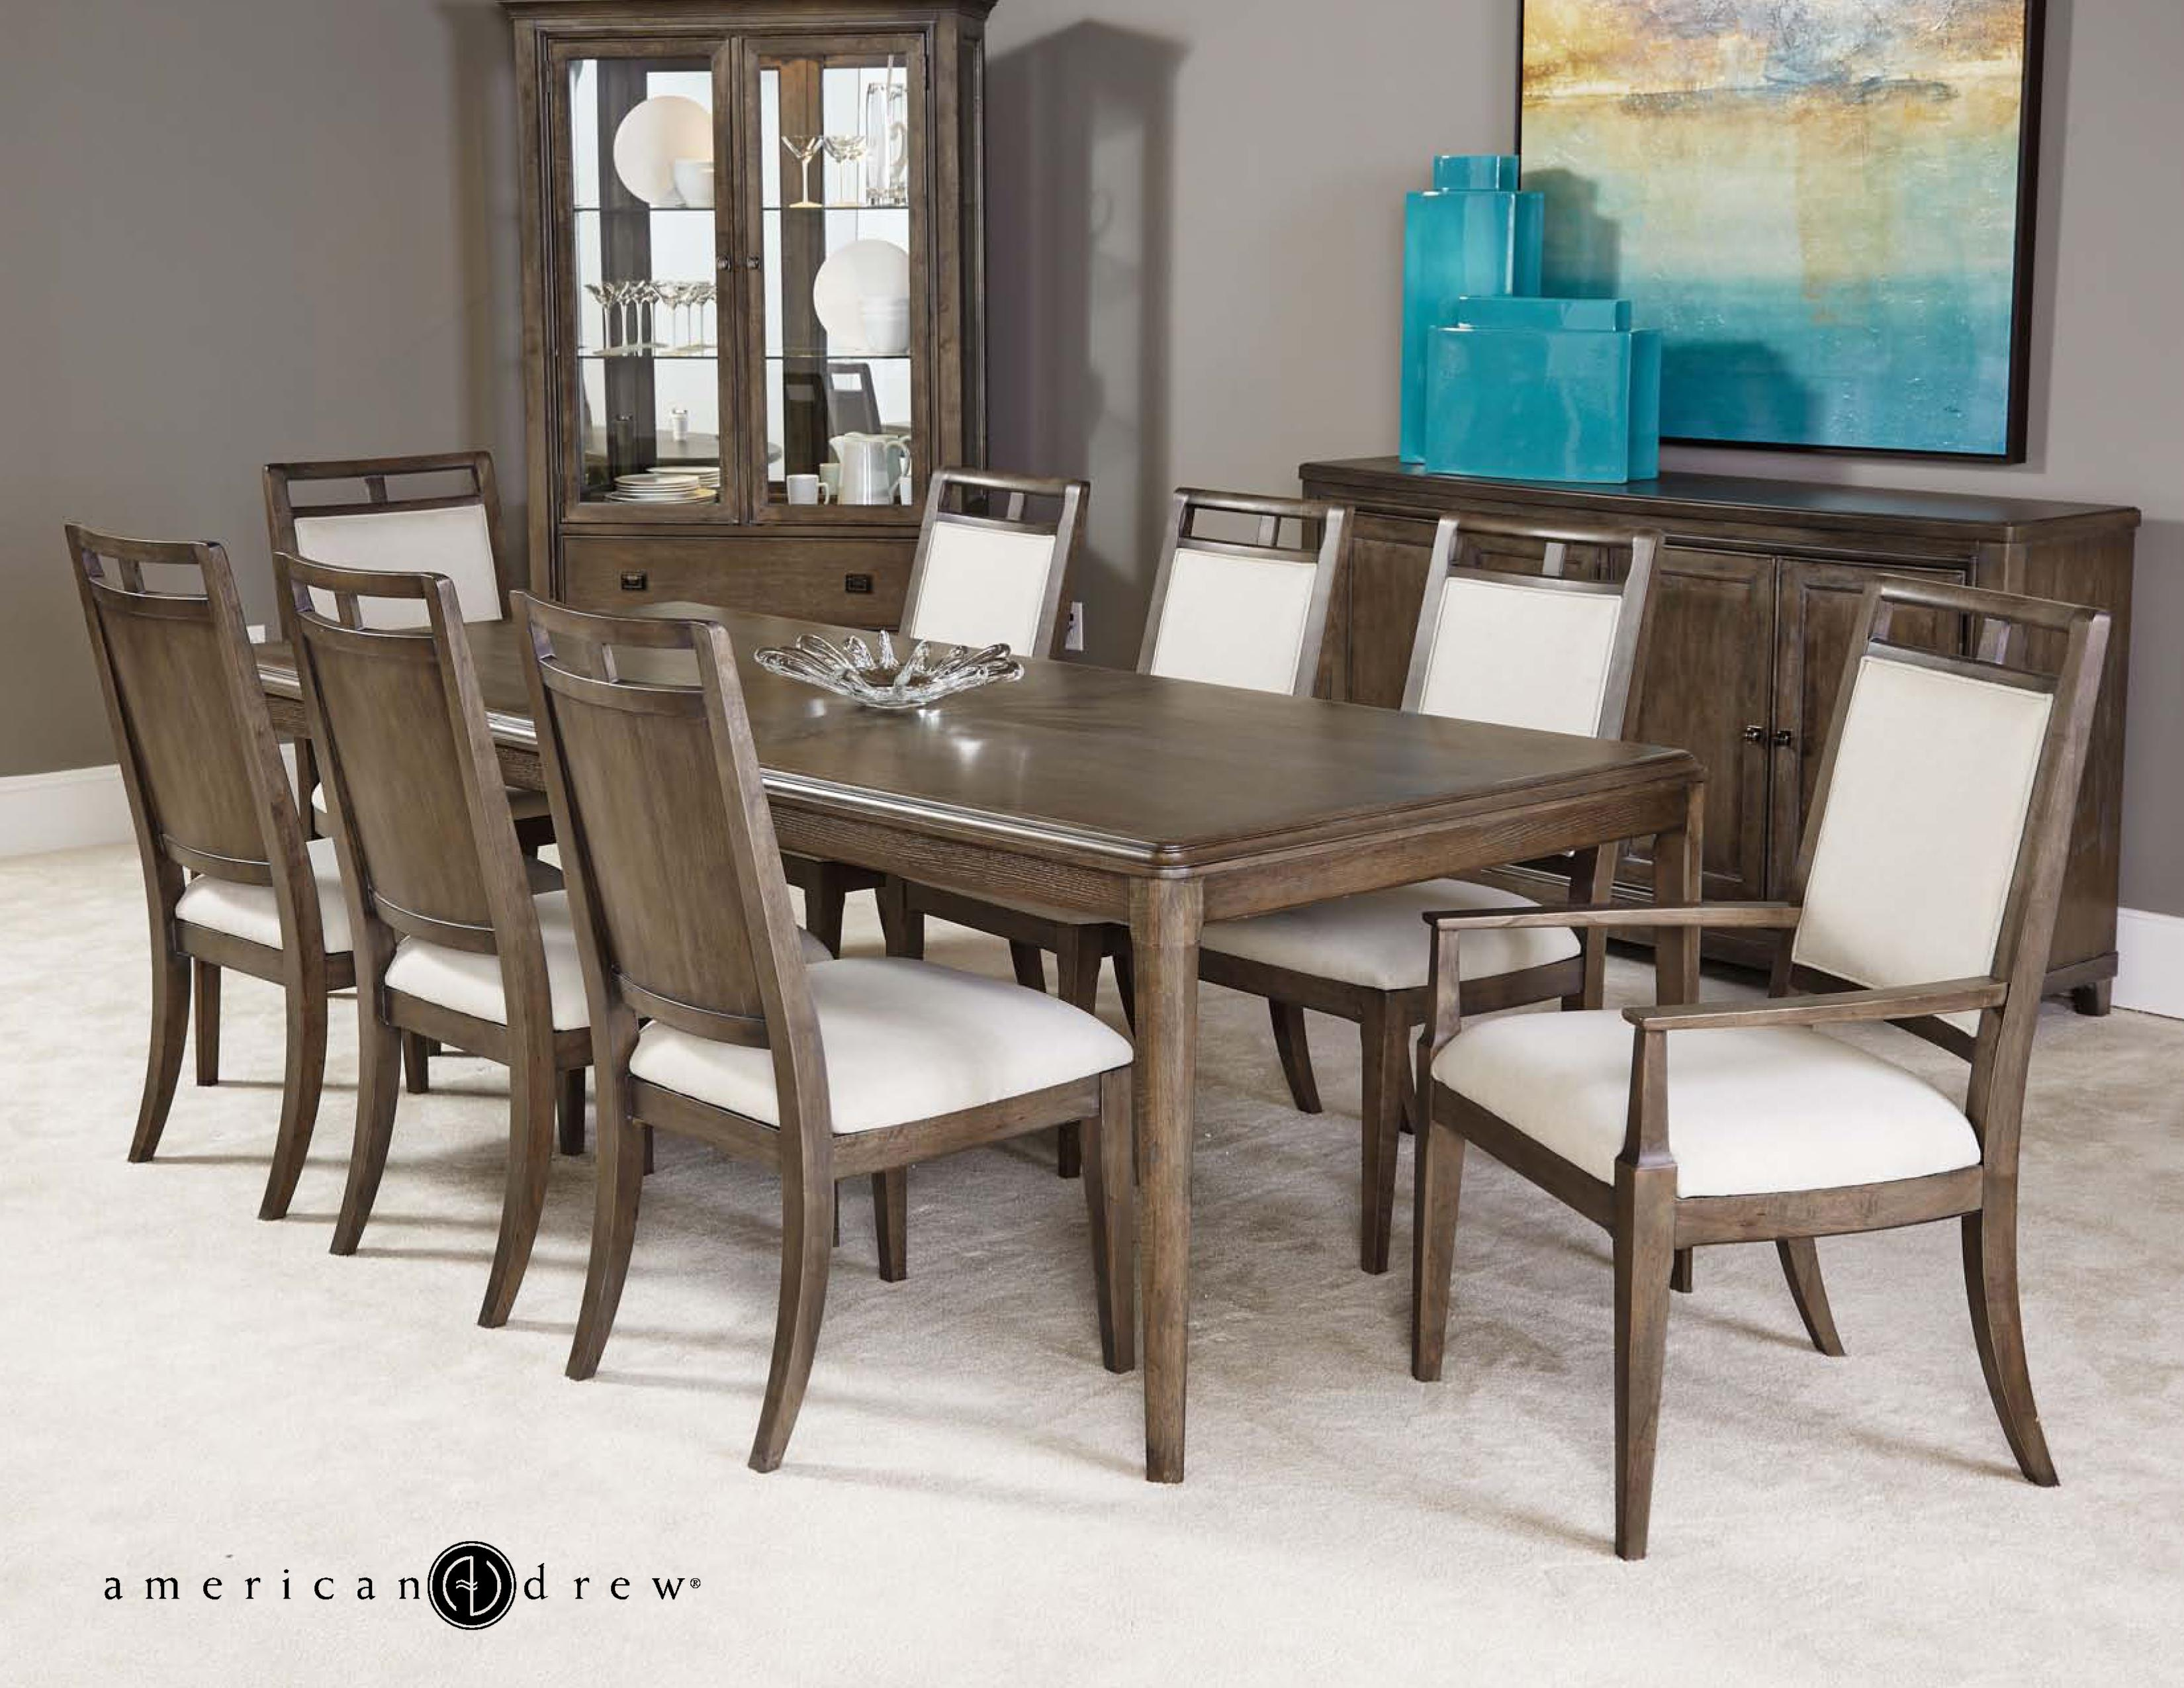 Dining Room Sets Johnny Janosik American Drew Park Studio Casual Group